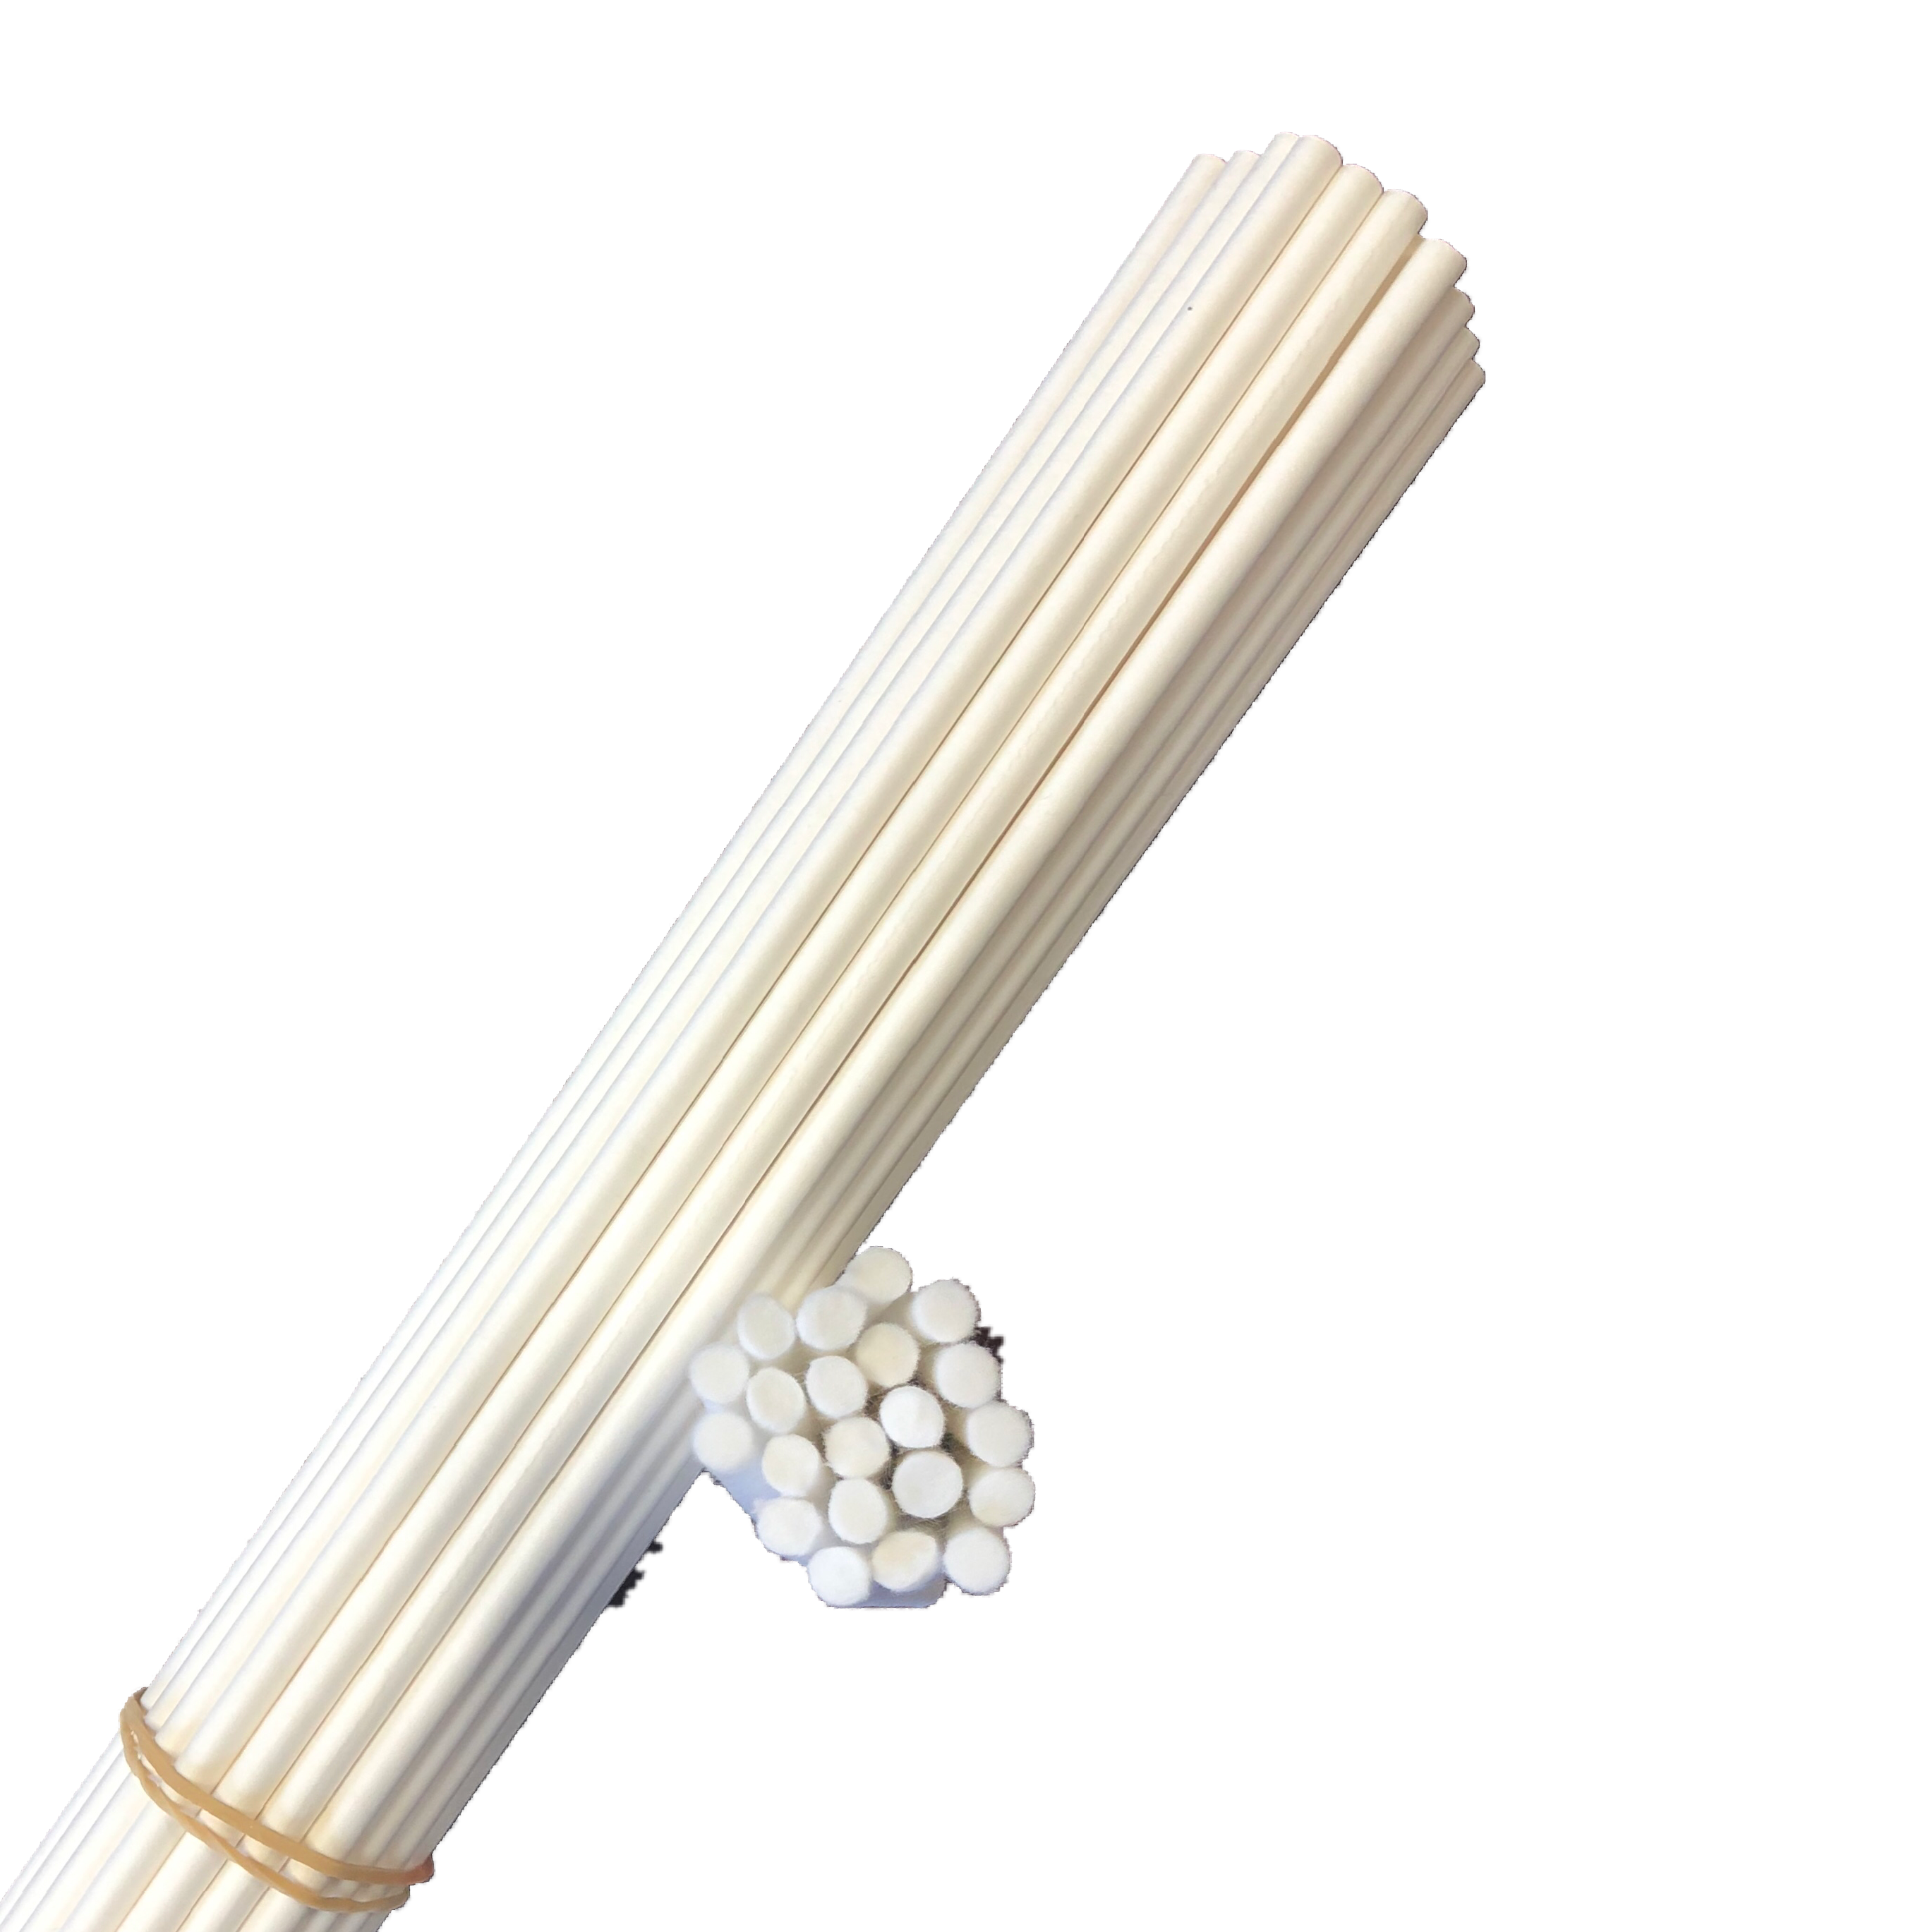 Polyester-Duft-Diffusor-Stick